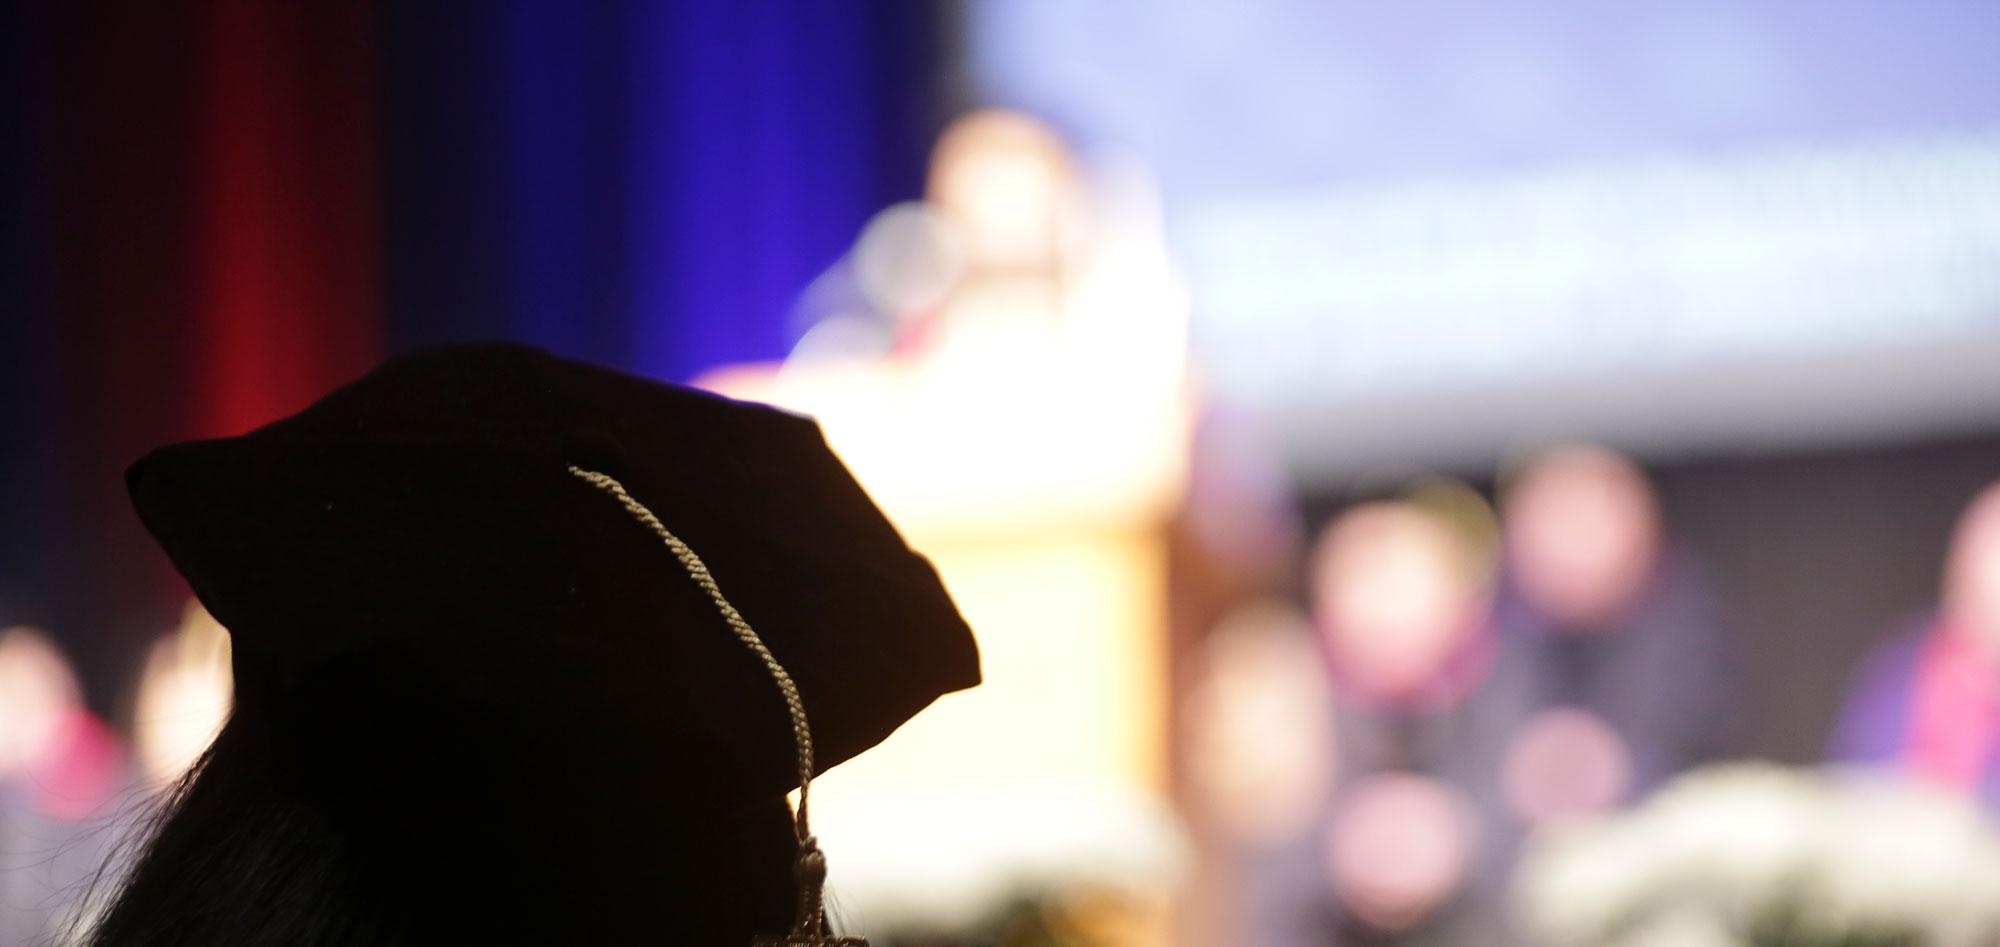 Law school graduate sitting in the convocation ceremony